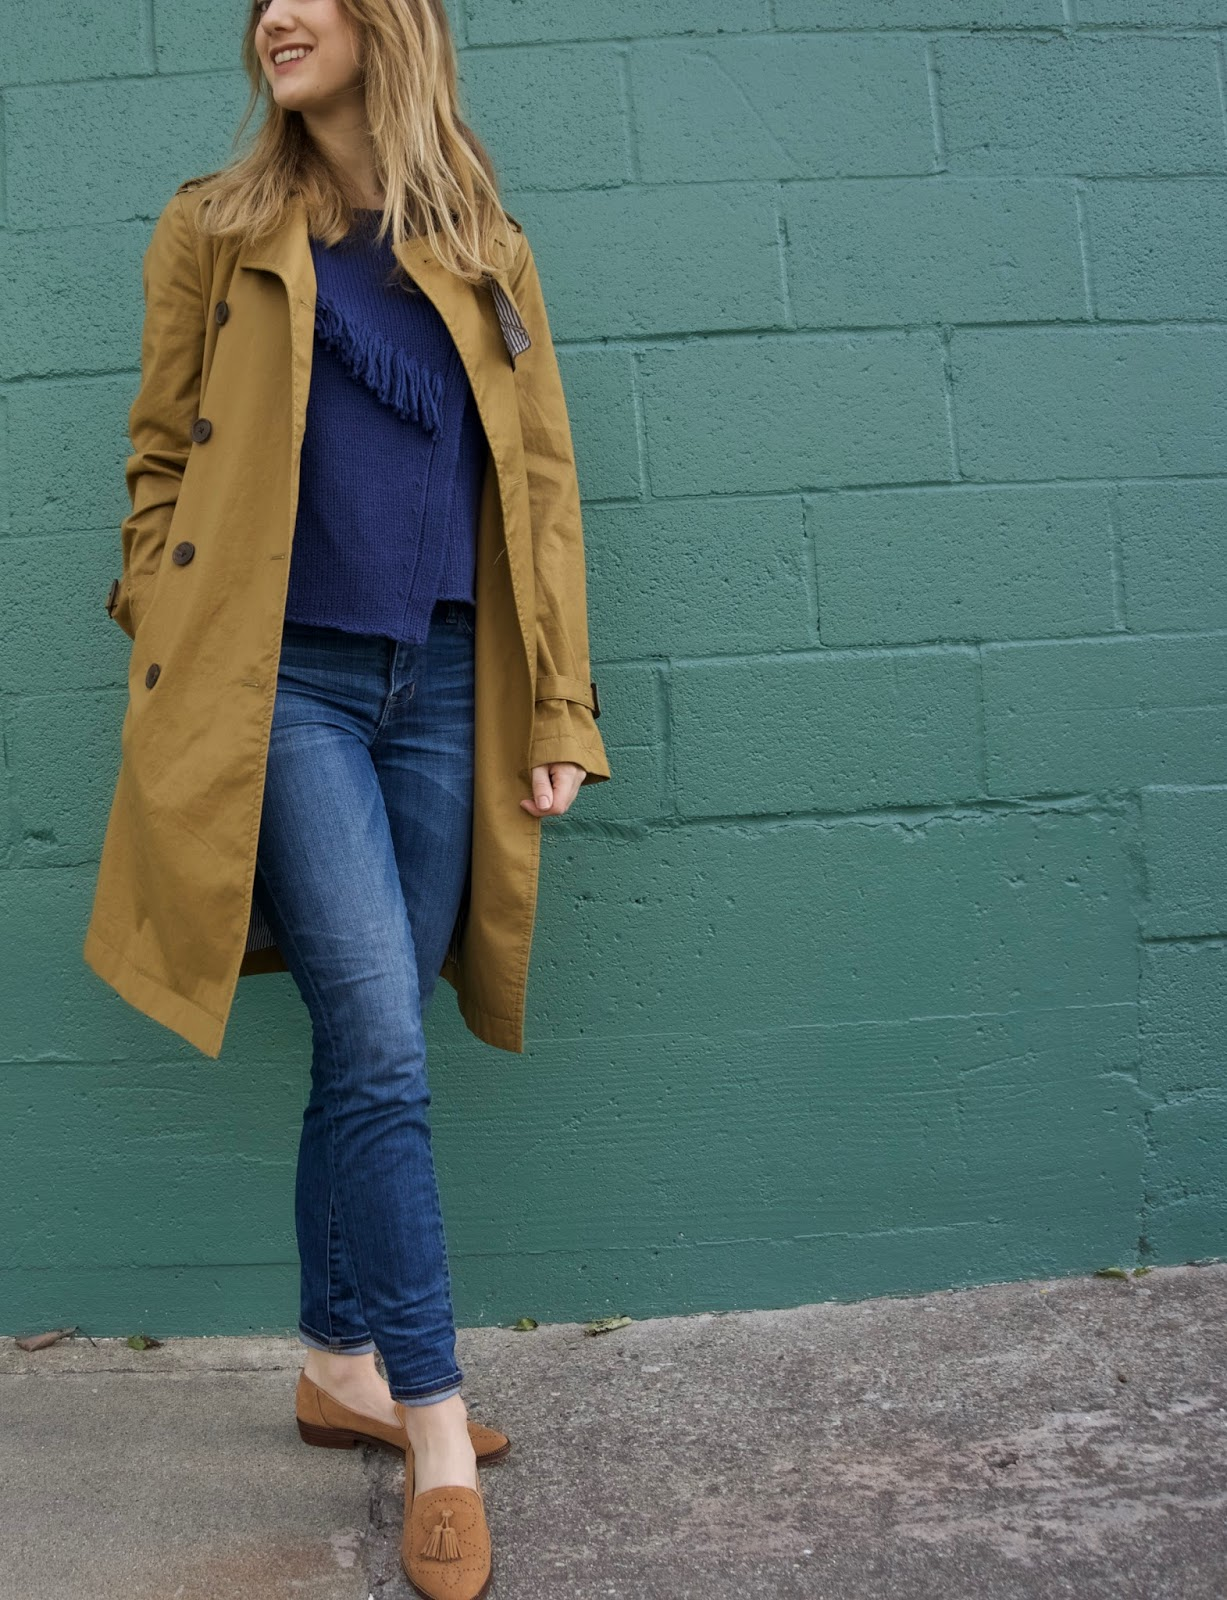 Trench coat and loafers